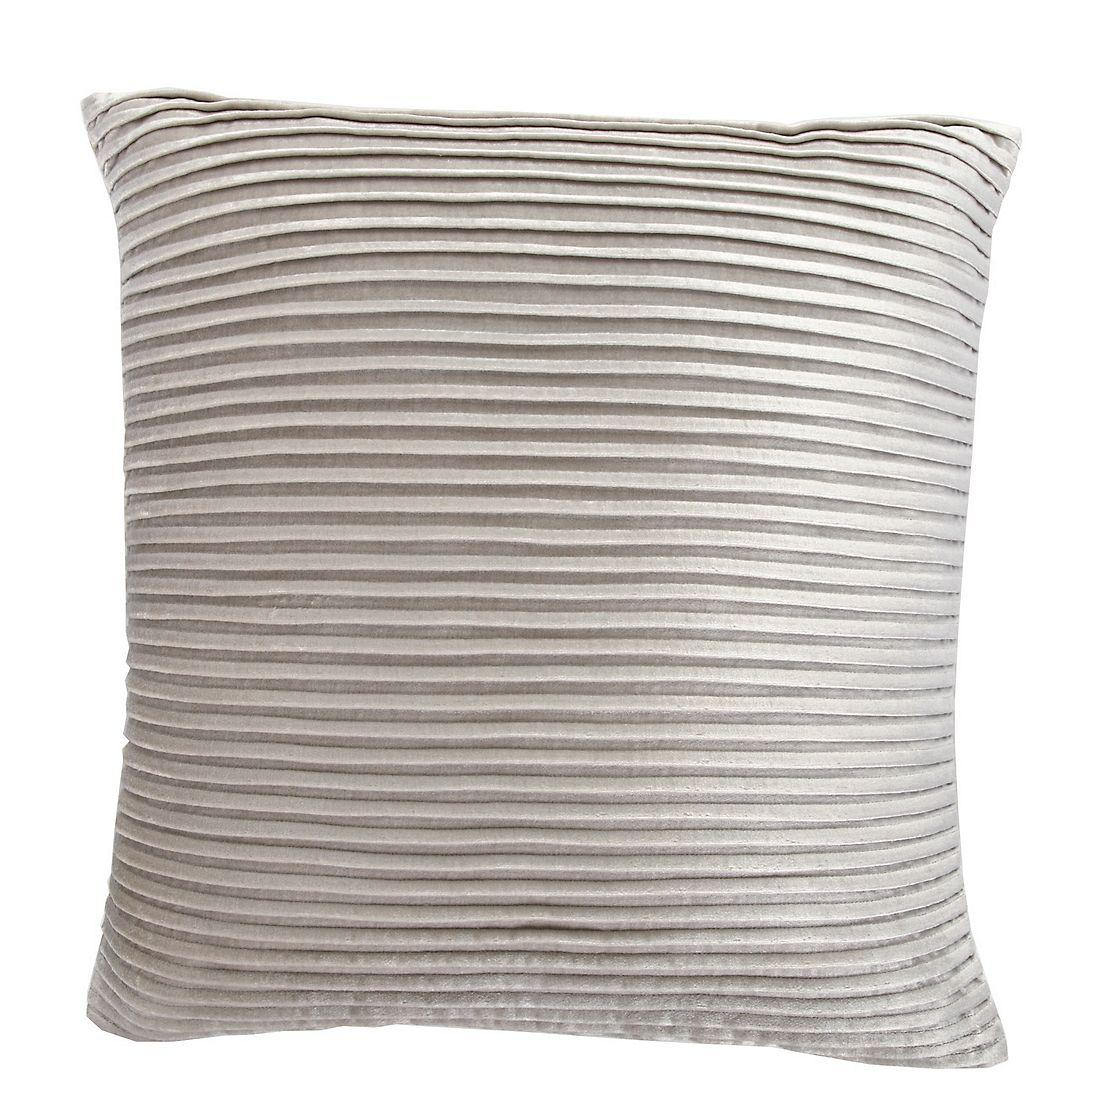 Solid Throw Pillow Covers The Company Store